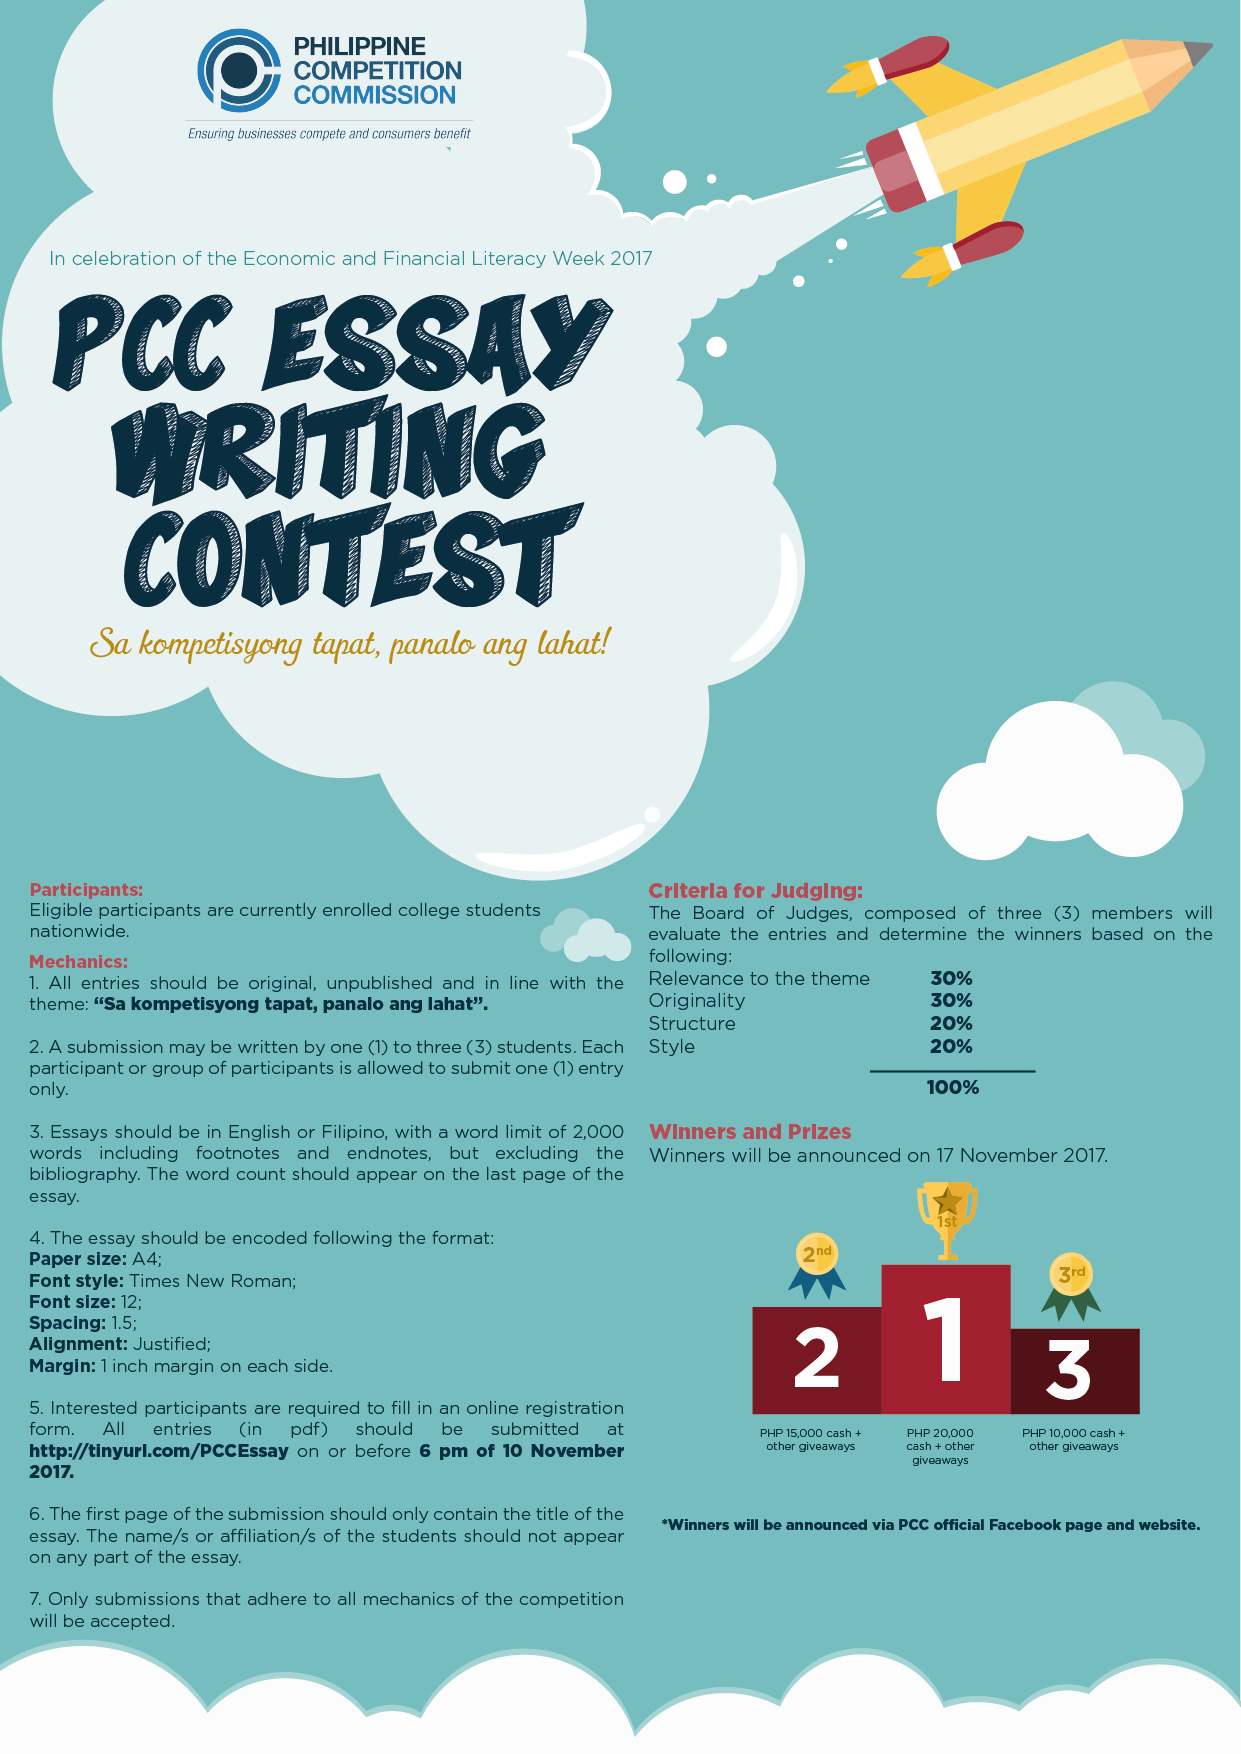 004 Essay Example Writing Contest Poster Final Incredible Free Contests 2018 International Competitions For High School Students India Full